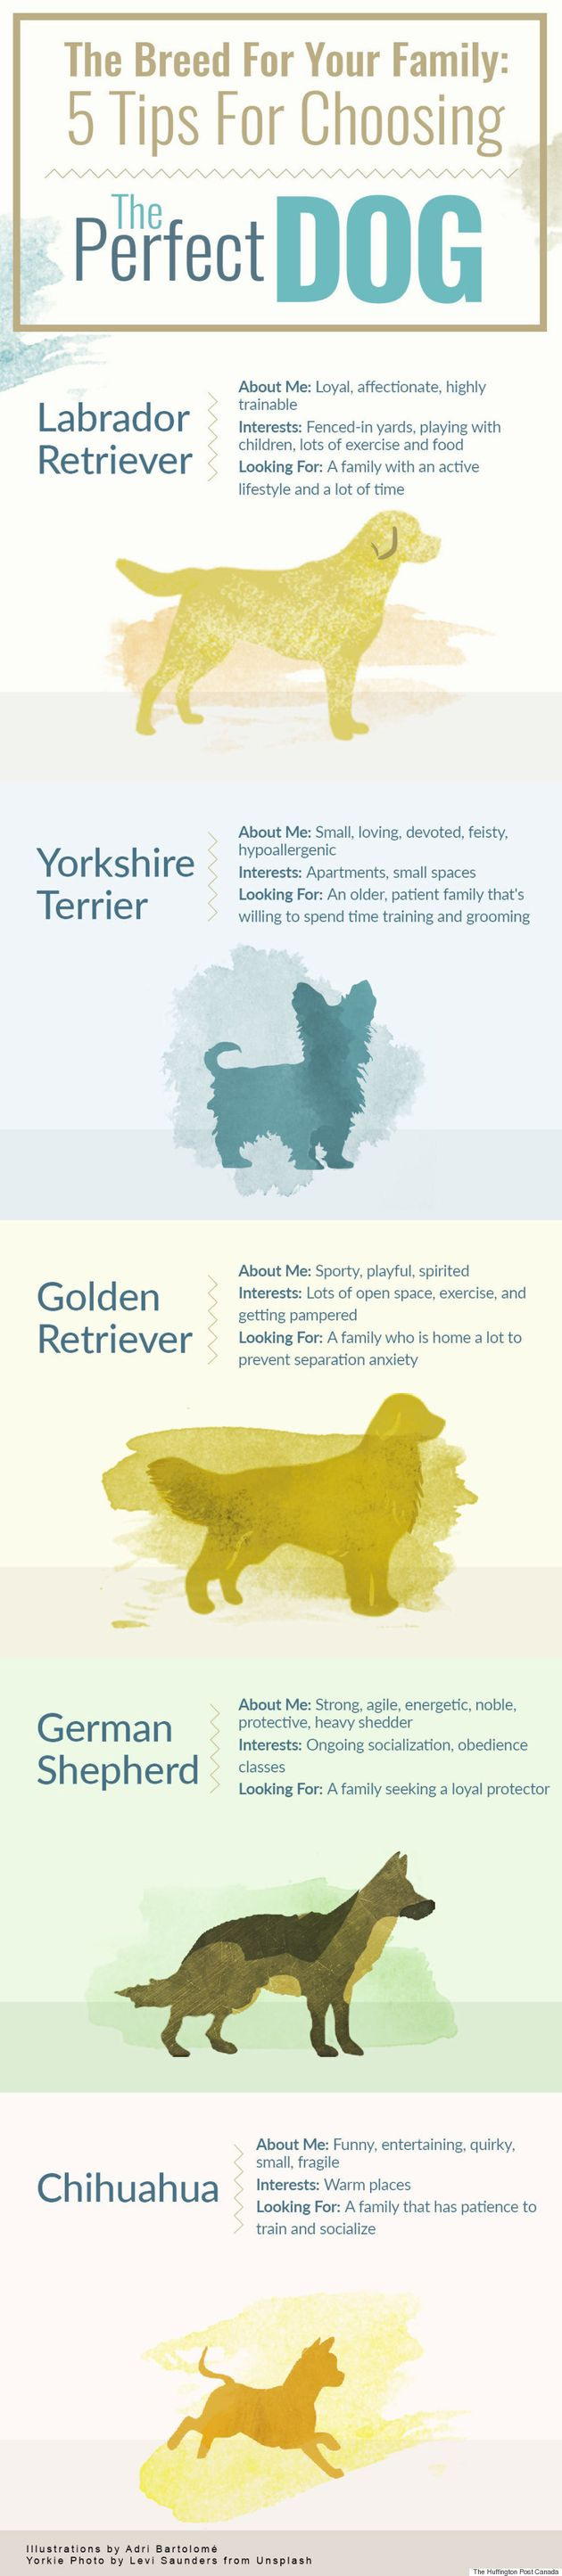 The Breed For Your Family: 5 Tips For Choosing The Perfect